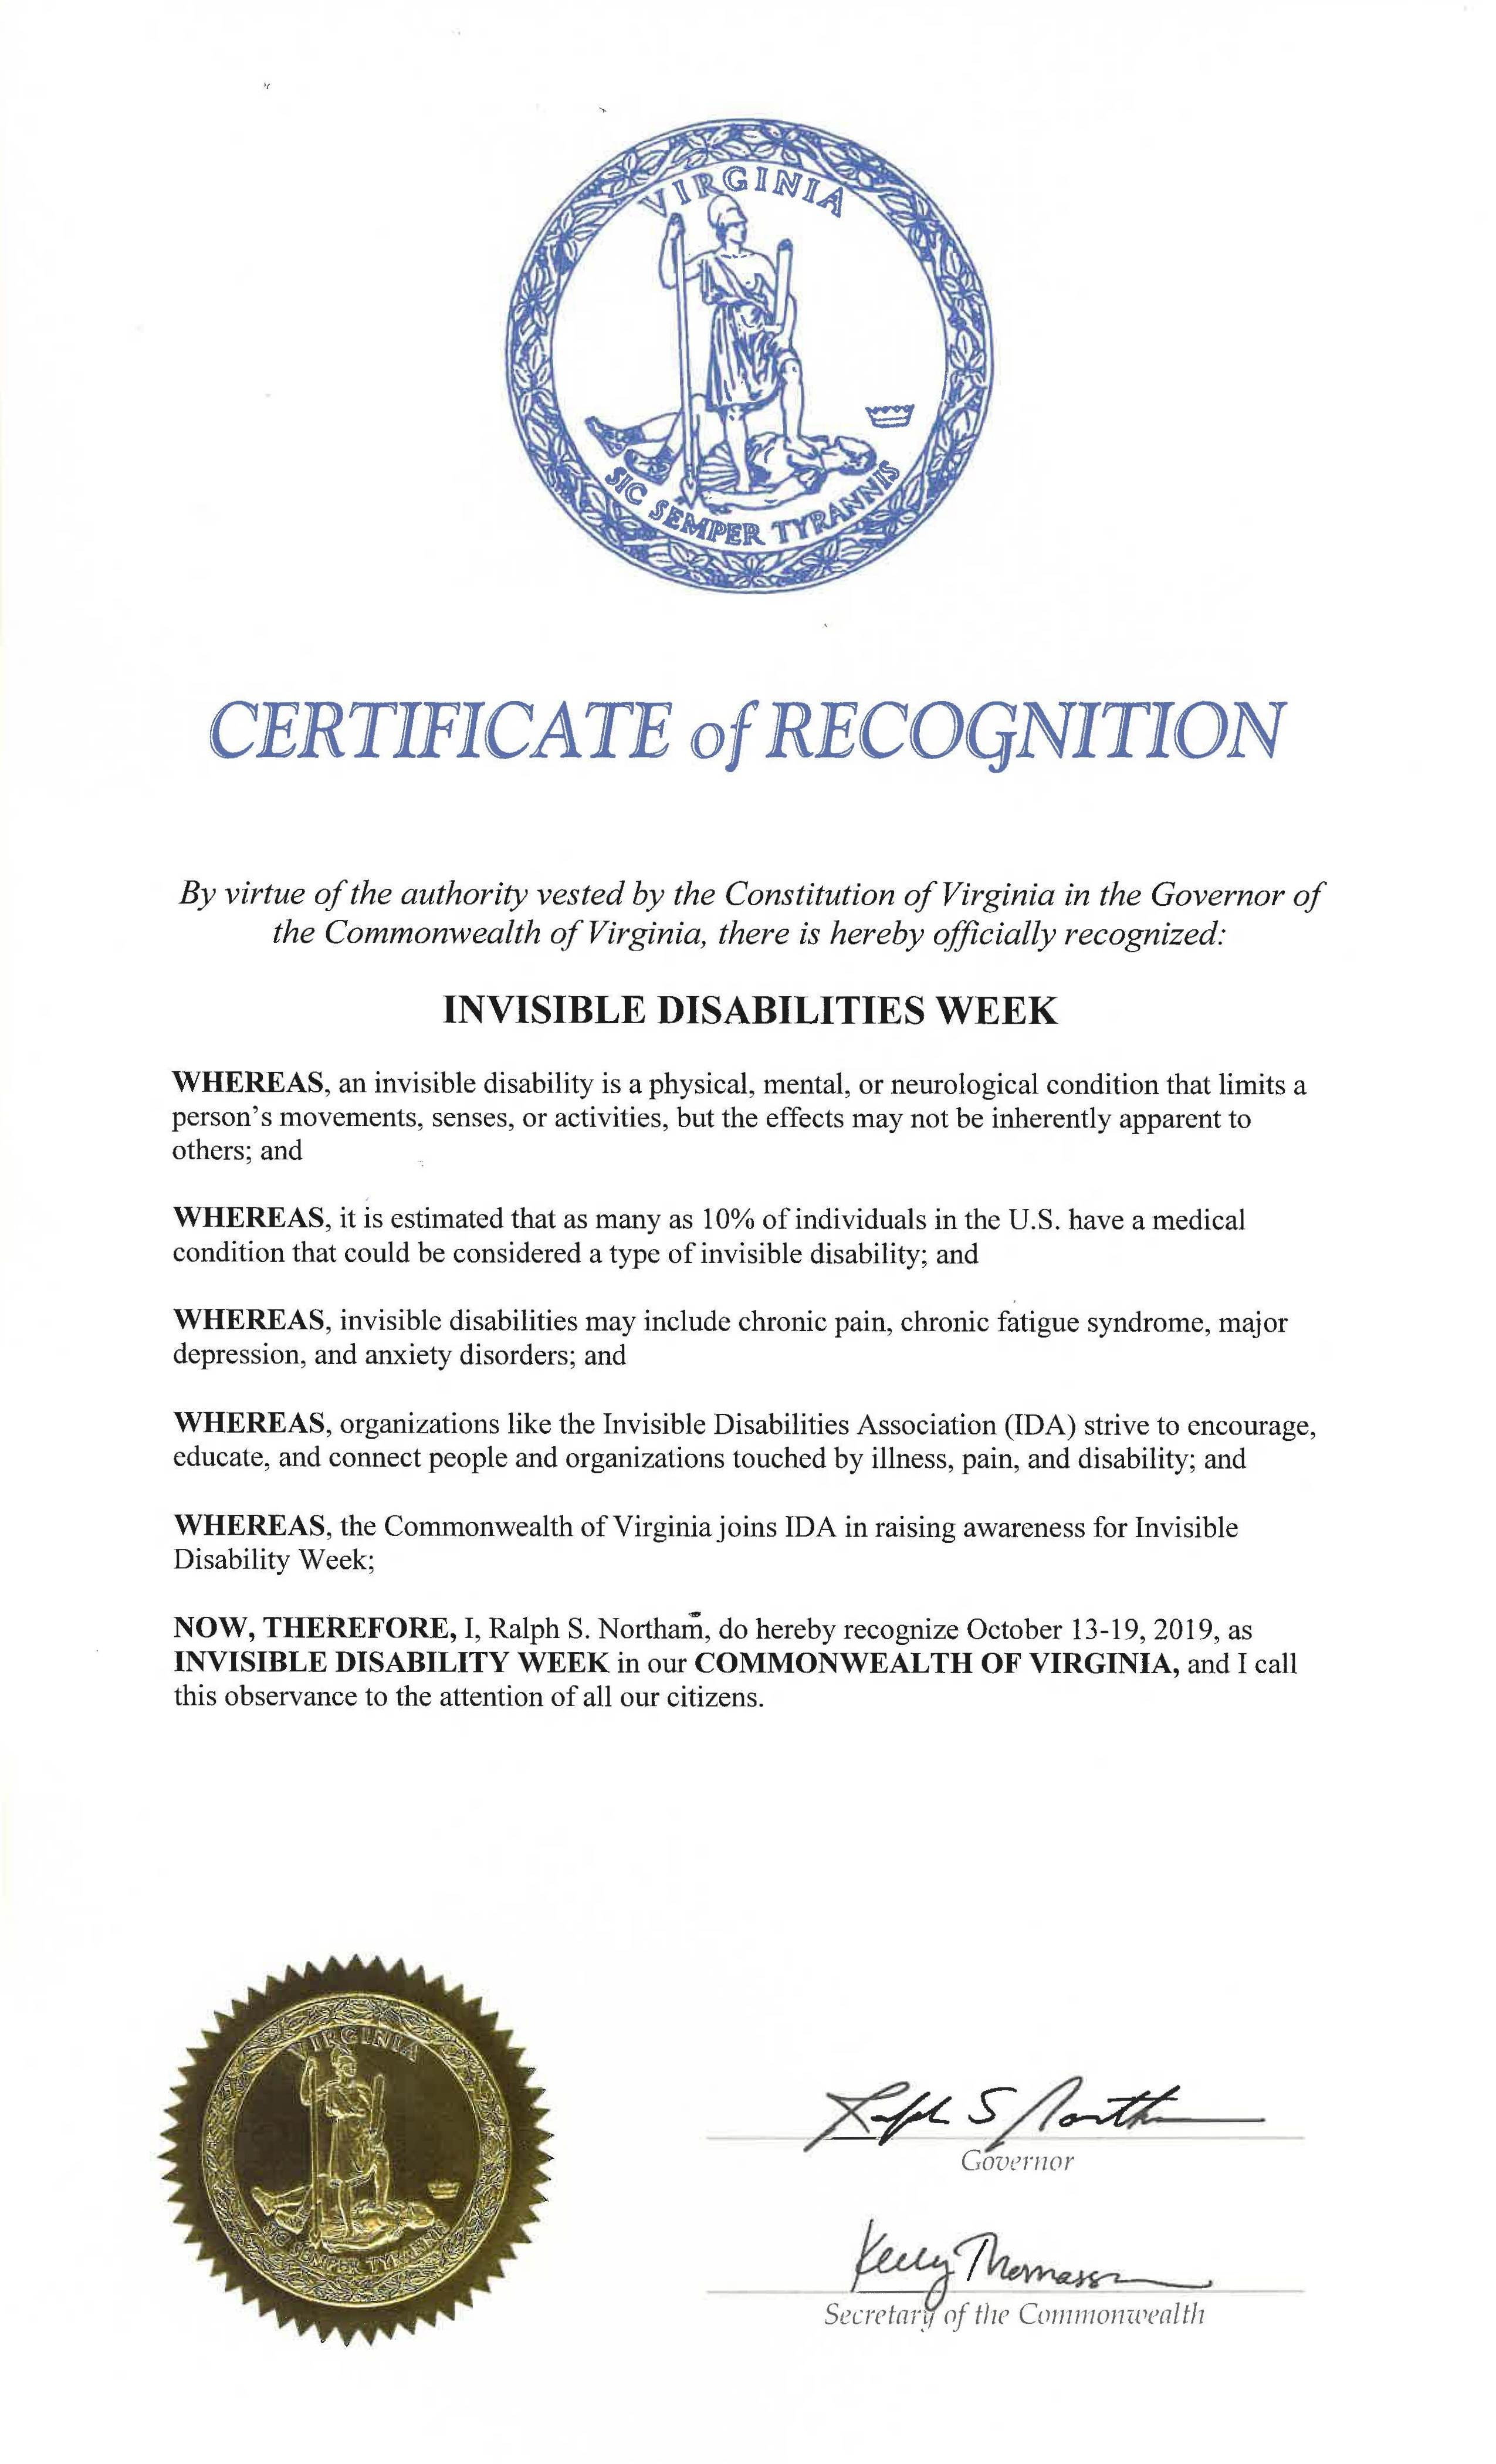 State of Virginia - Invisible Disabilities Week Proclamation 2019